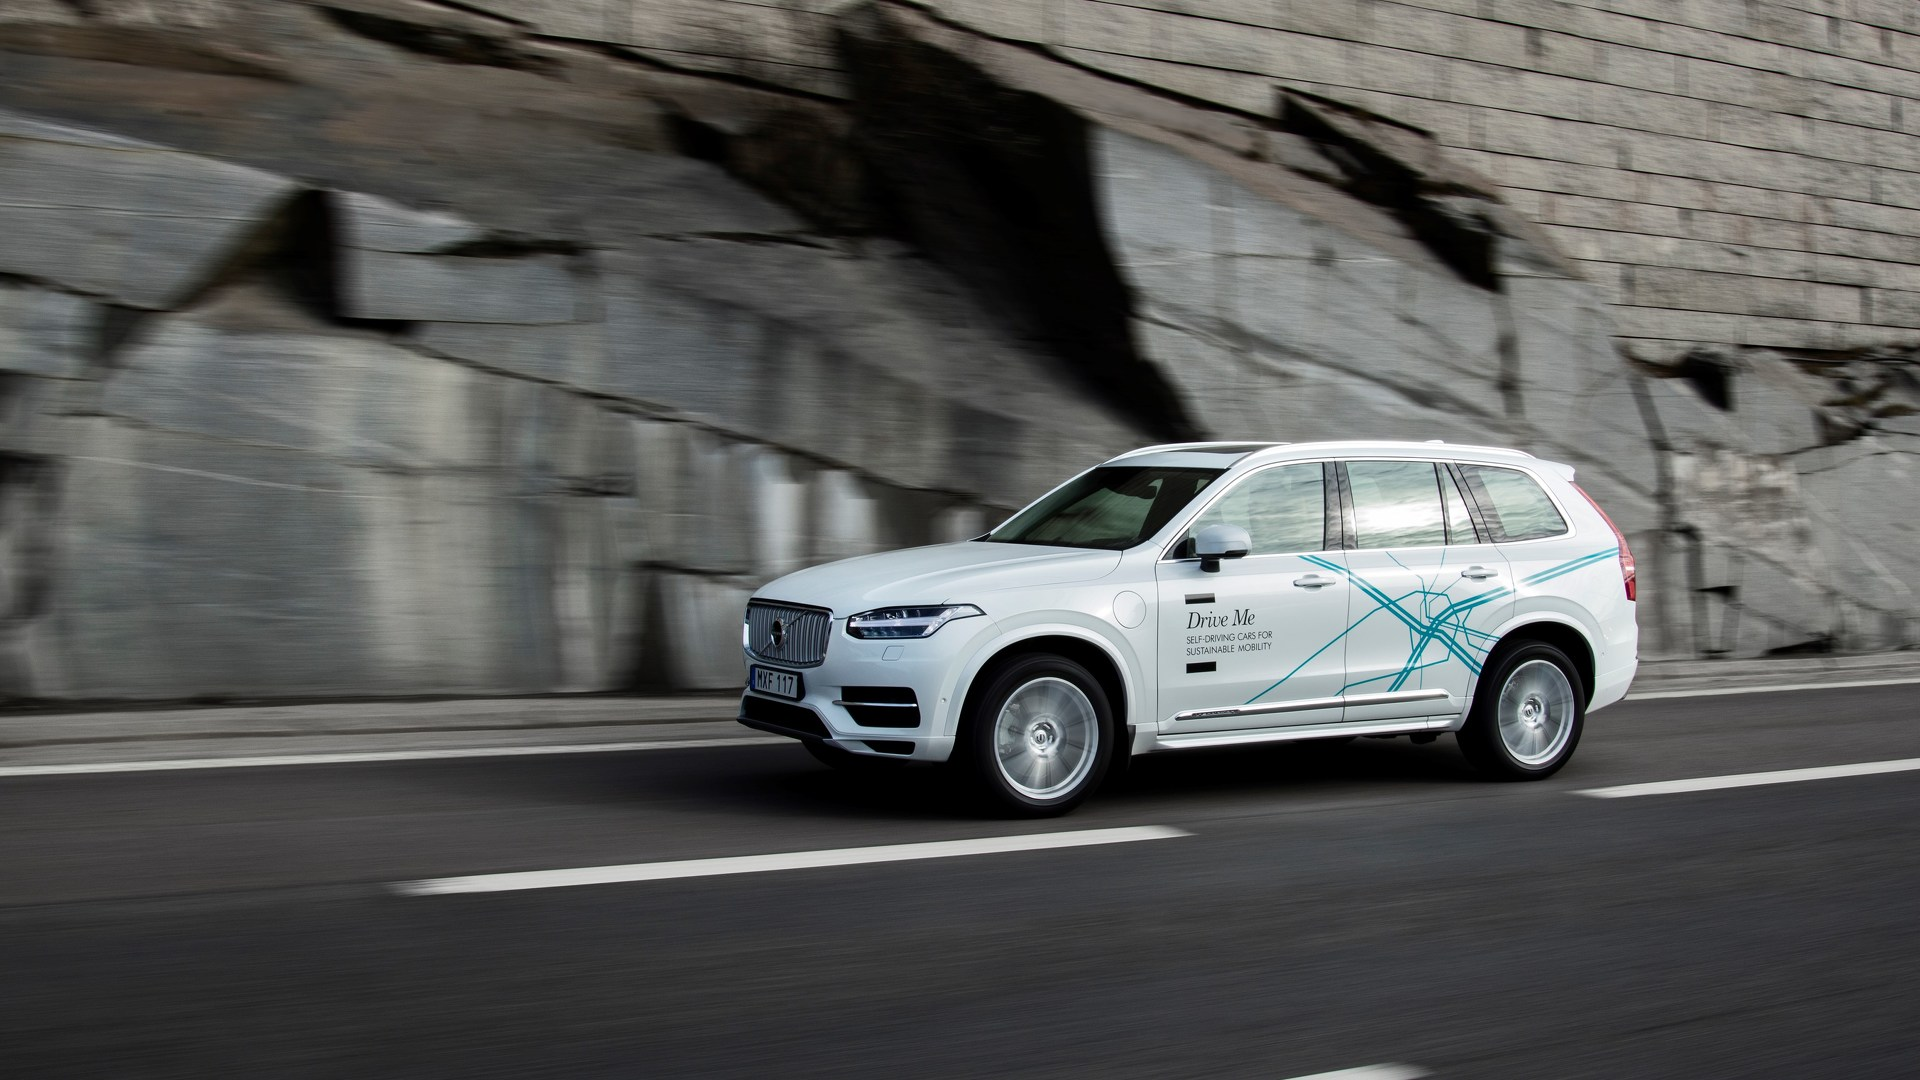 Volvo to package self-driving tech as $10k premium option by 2021